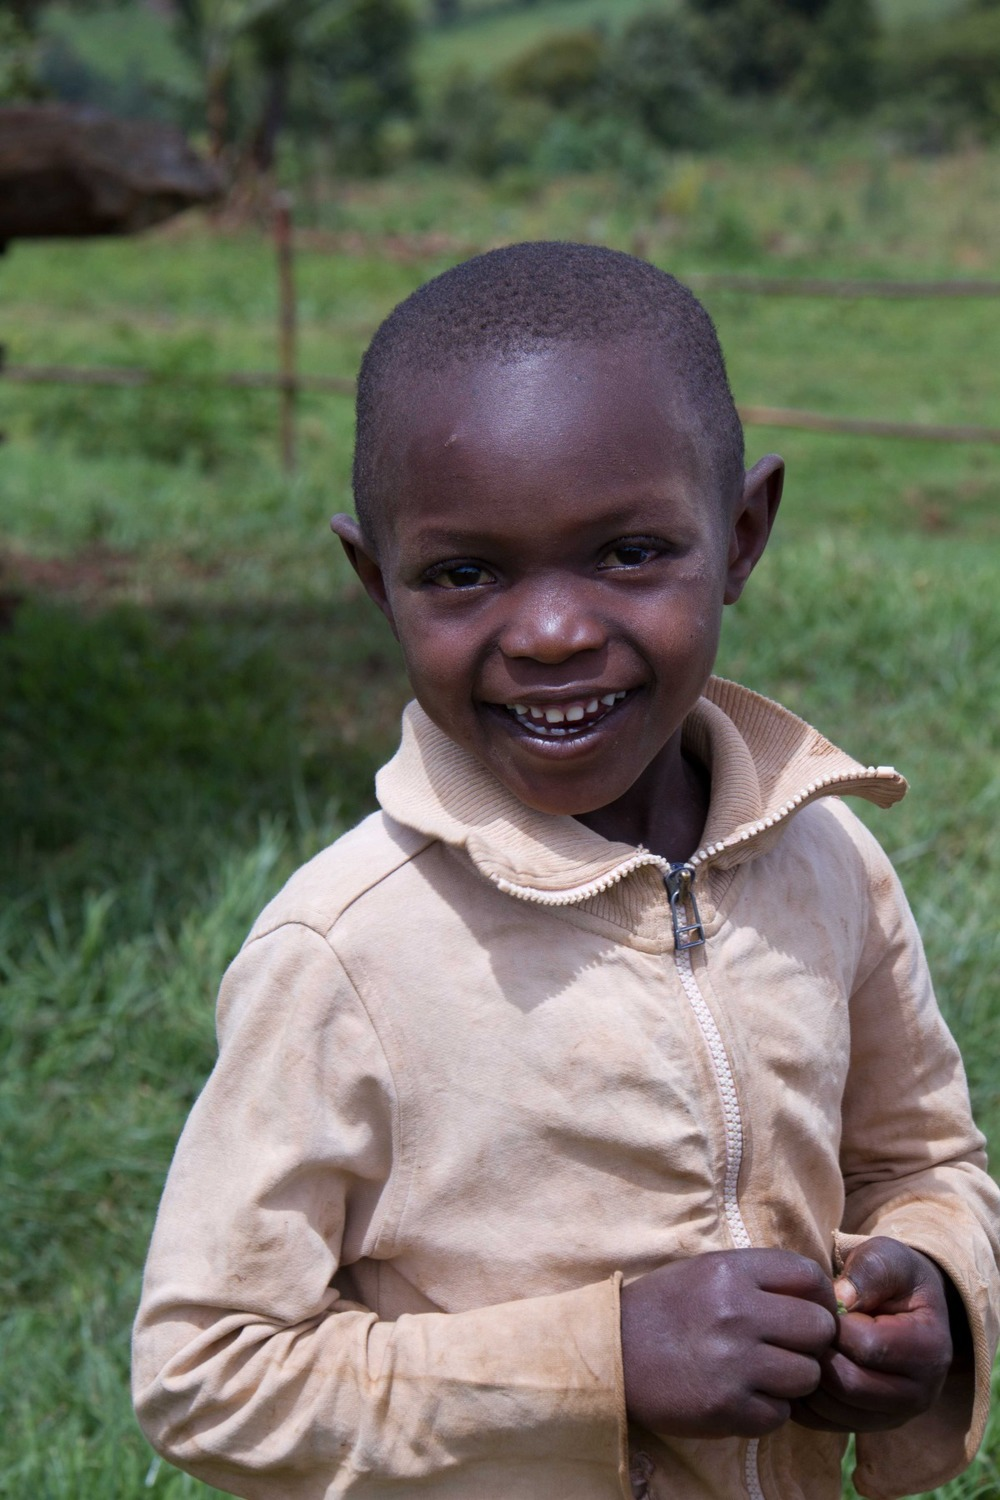 Kenyan child